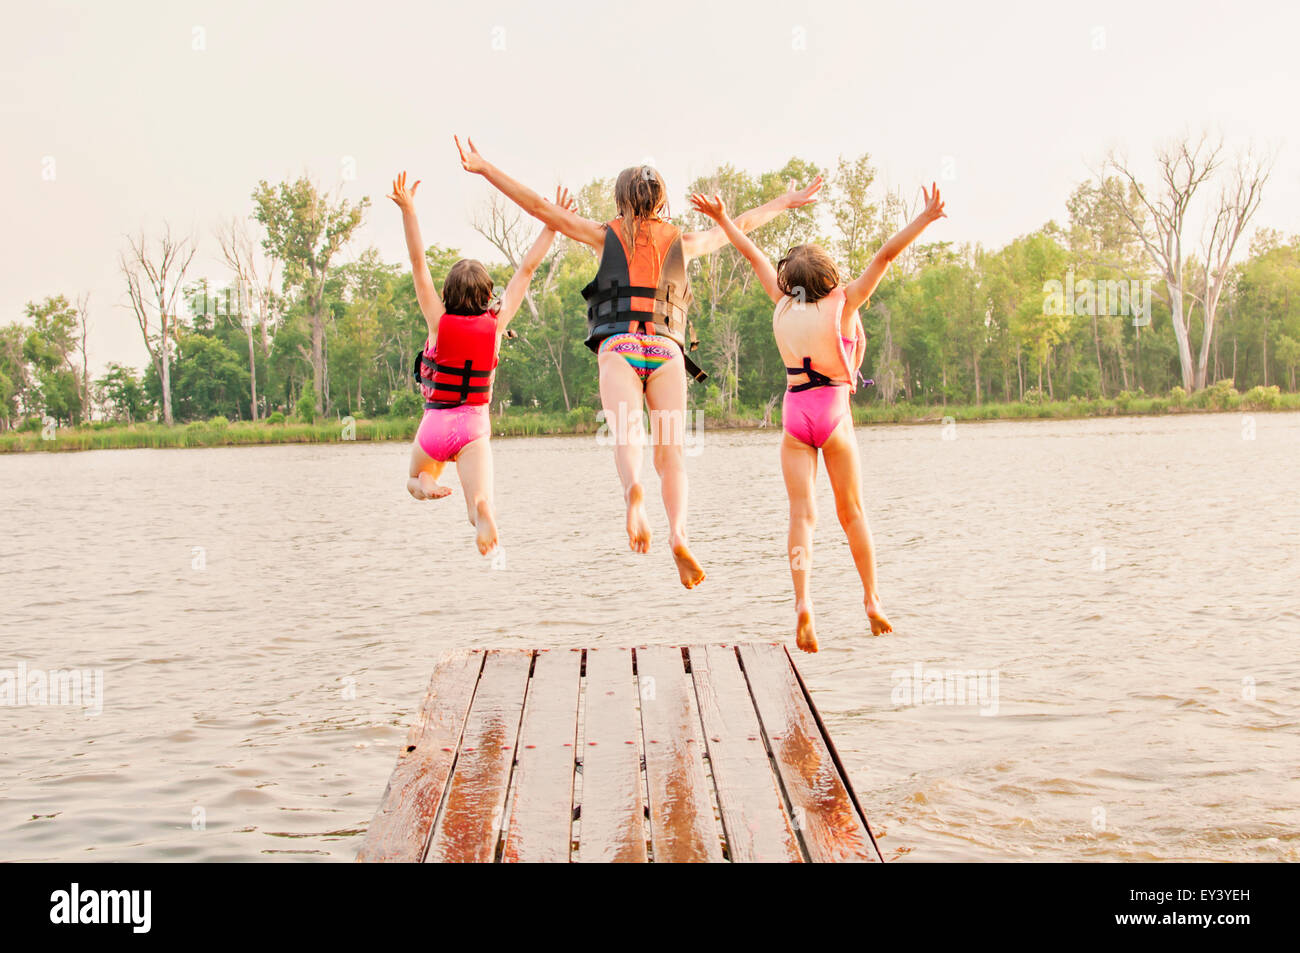 Three girls jump off dock into lake - Stock Image